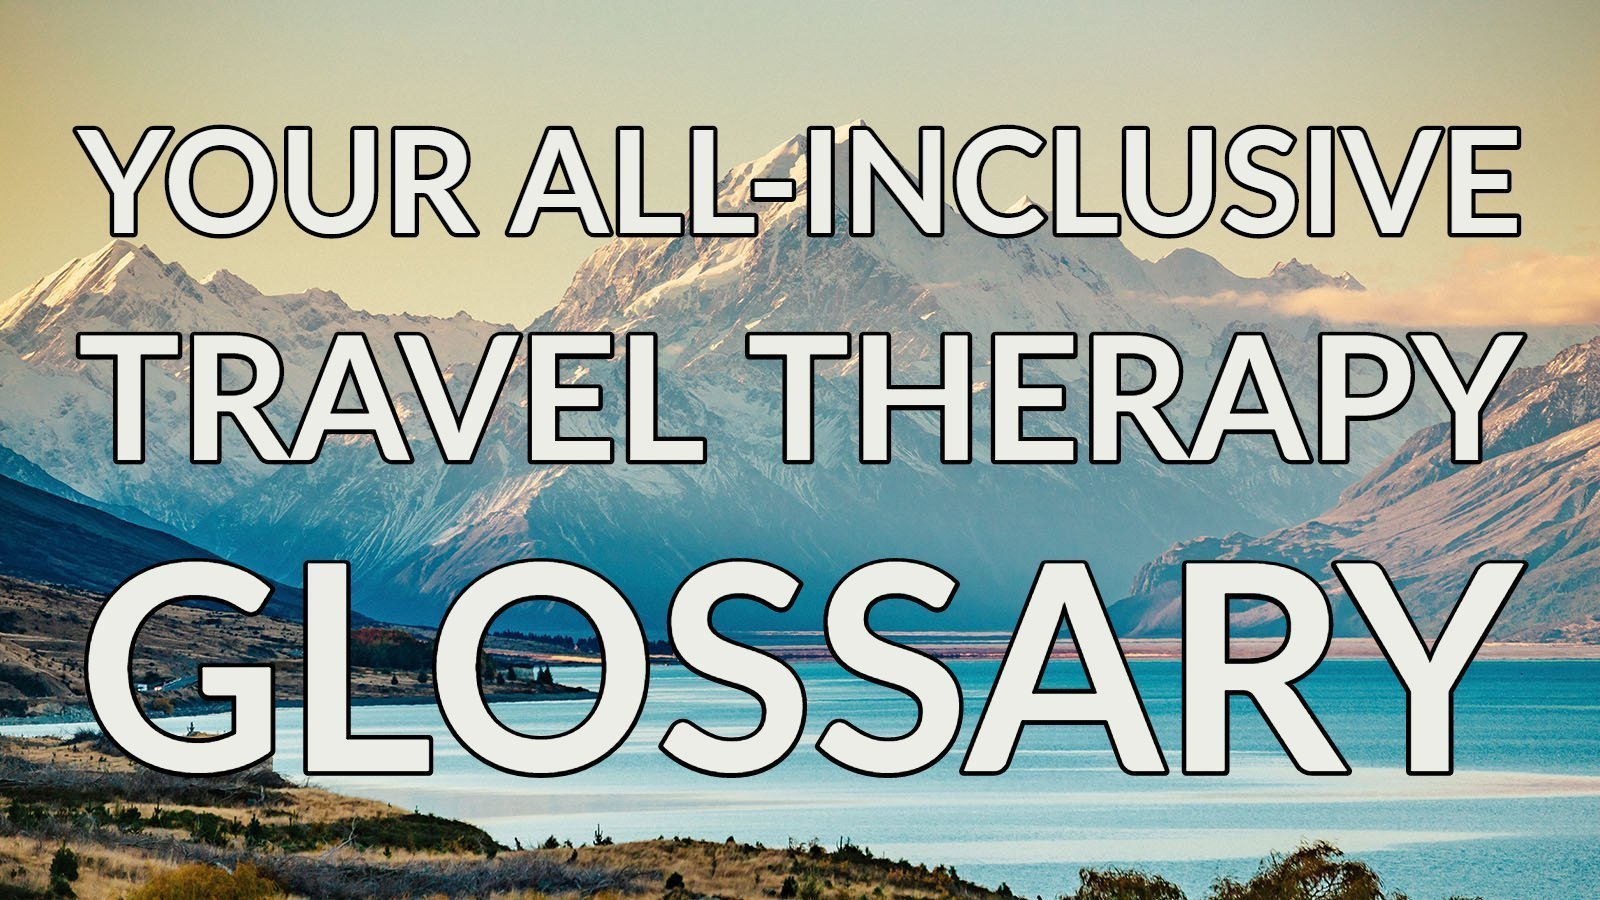 travel-therapy-glossary